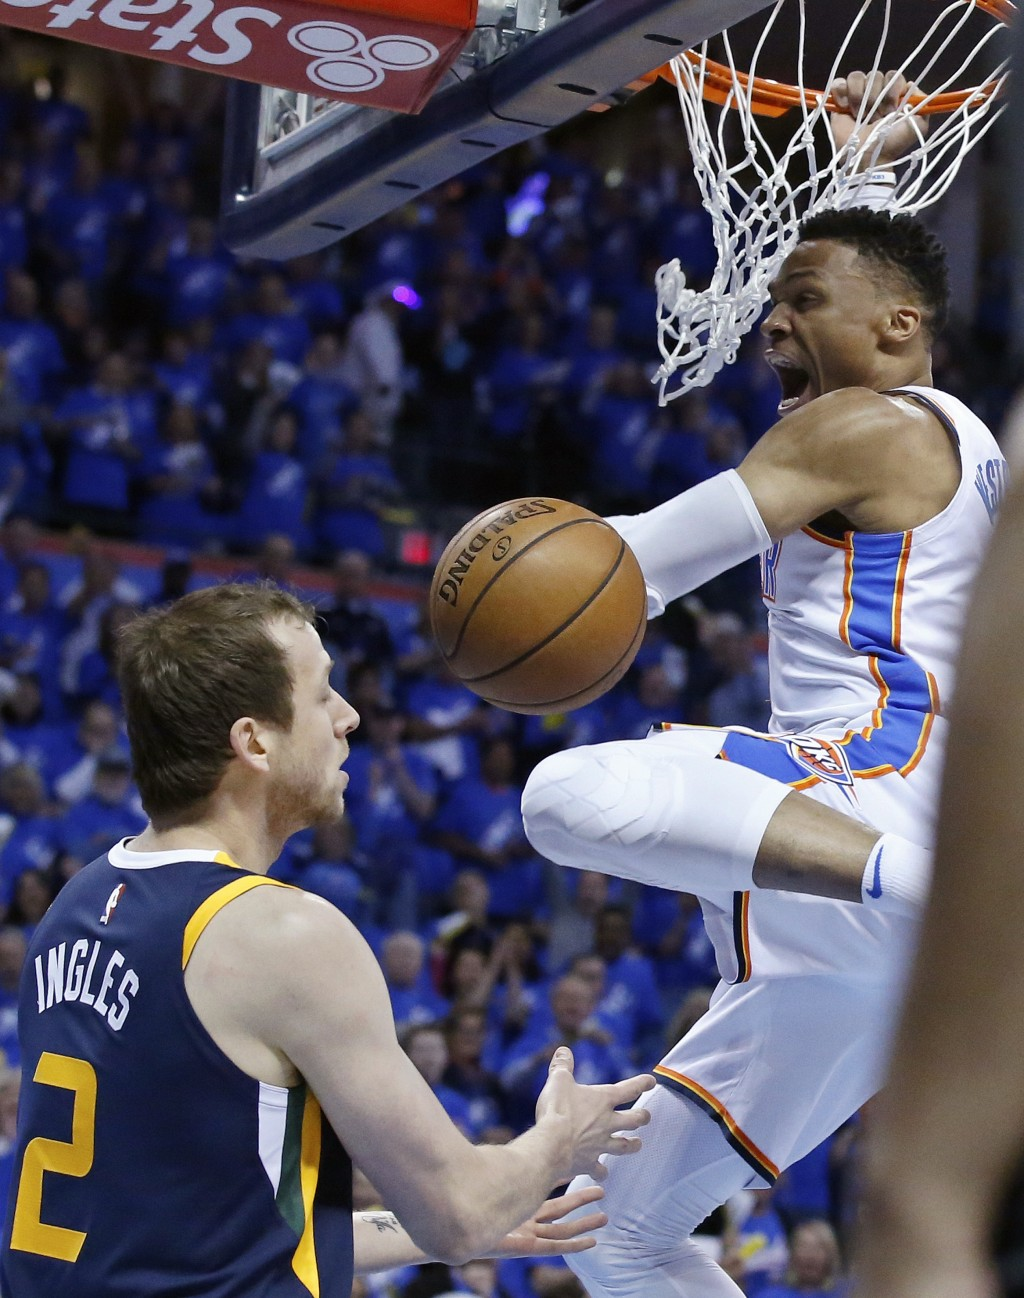 Oklahoma City Thunder guard Russell Westbrook, right, dunks in front of Utah Jazz forward Joe Ingles (2) in the first half of Game 1 of an NBA basketb